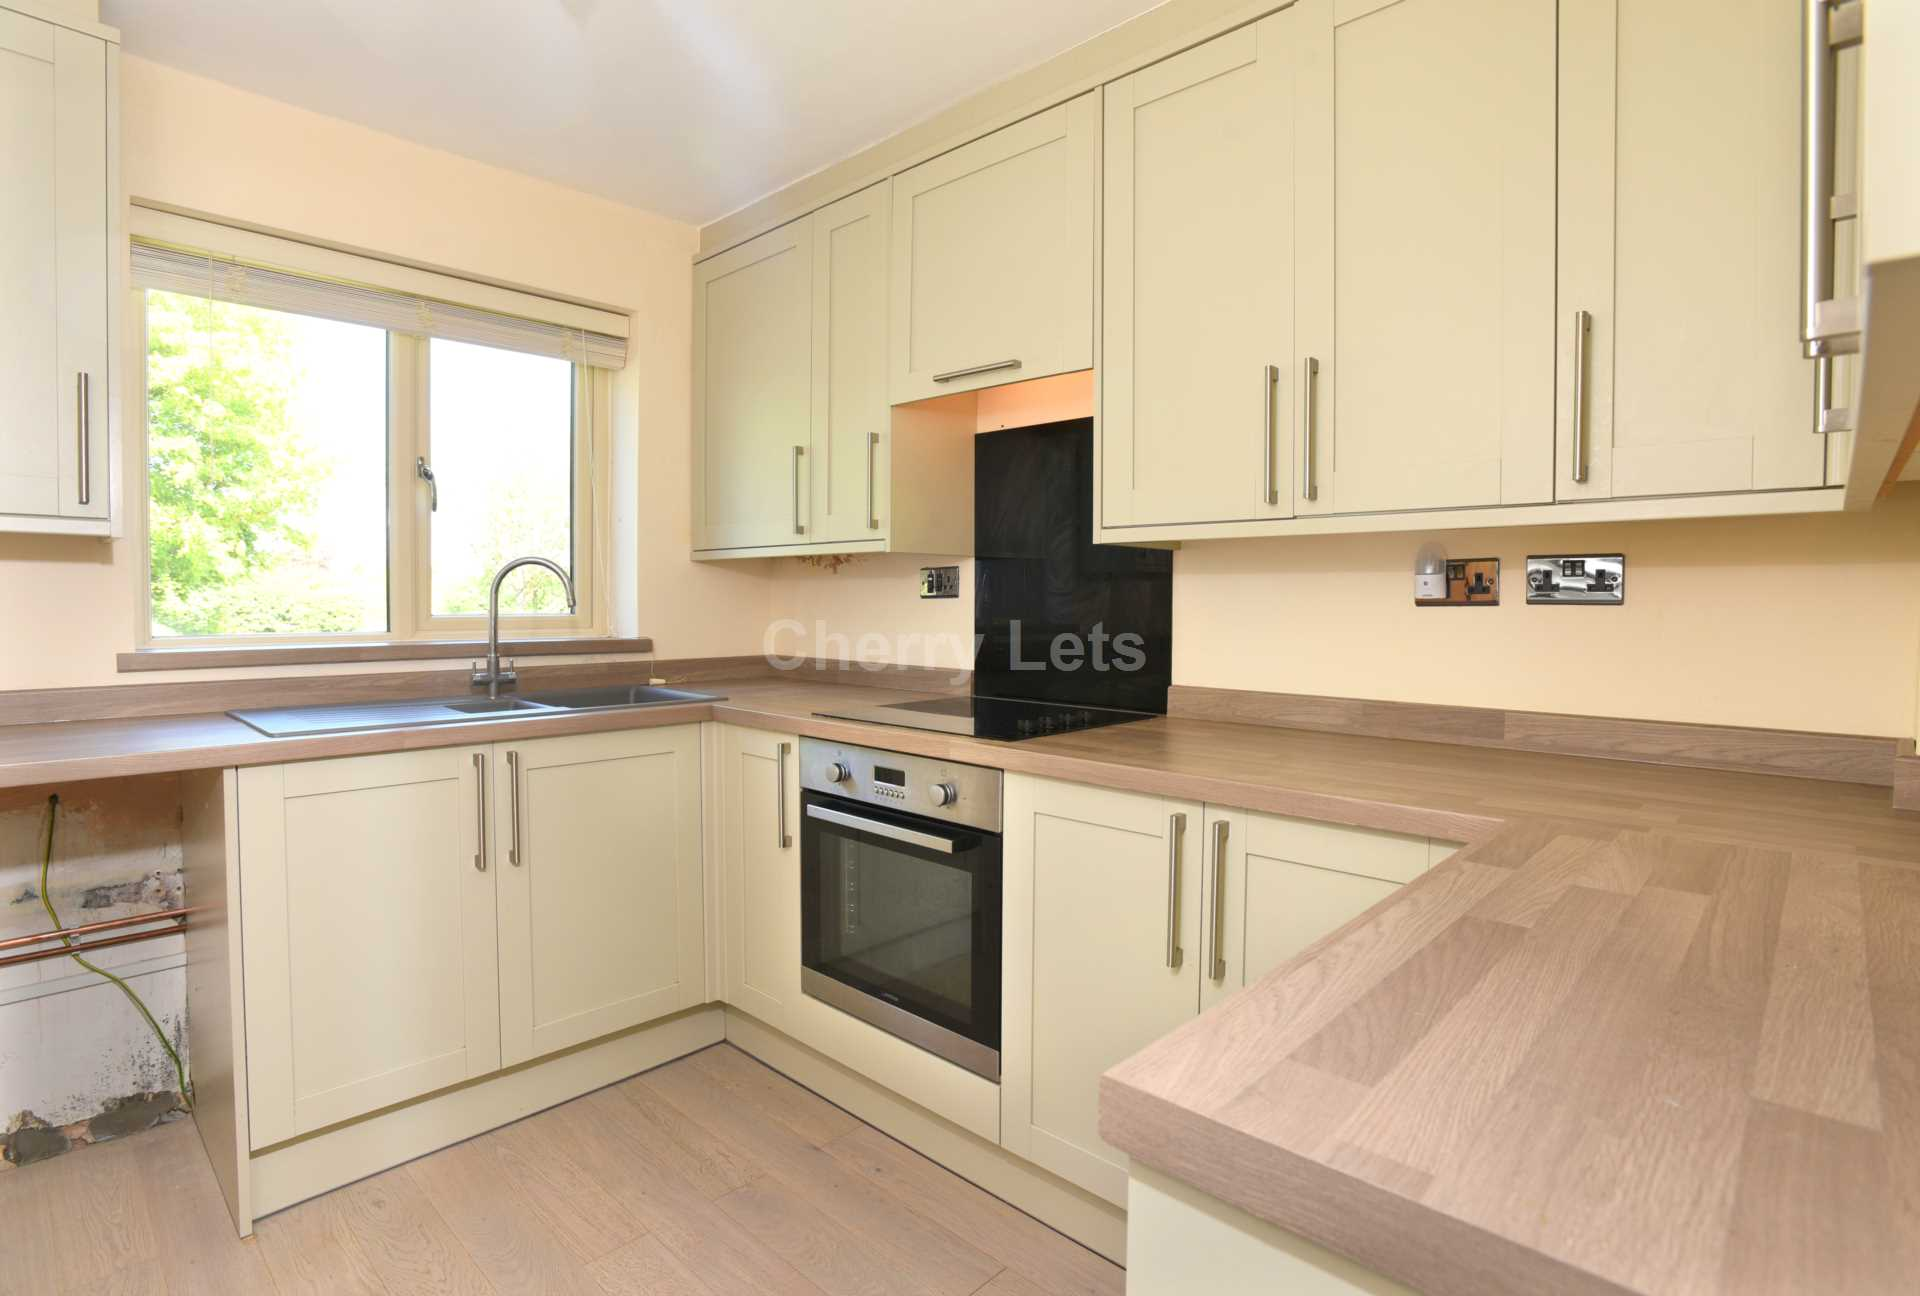 3 bed terraced house to rent in Keytes Close, Adderbury, OX17  - Property Image 2